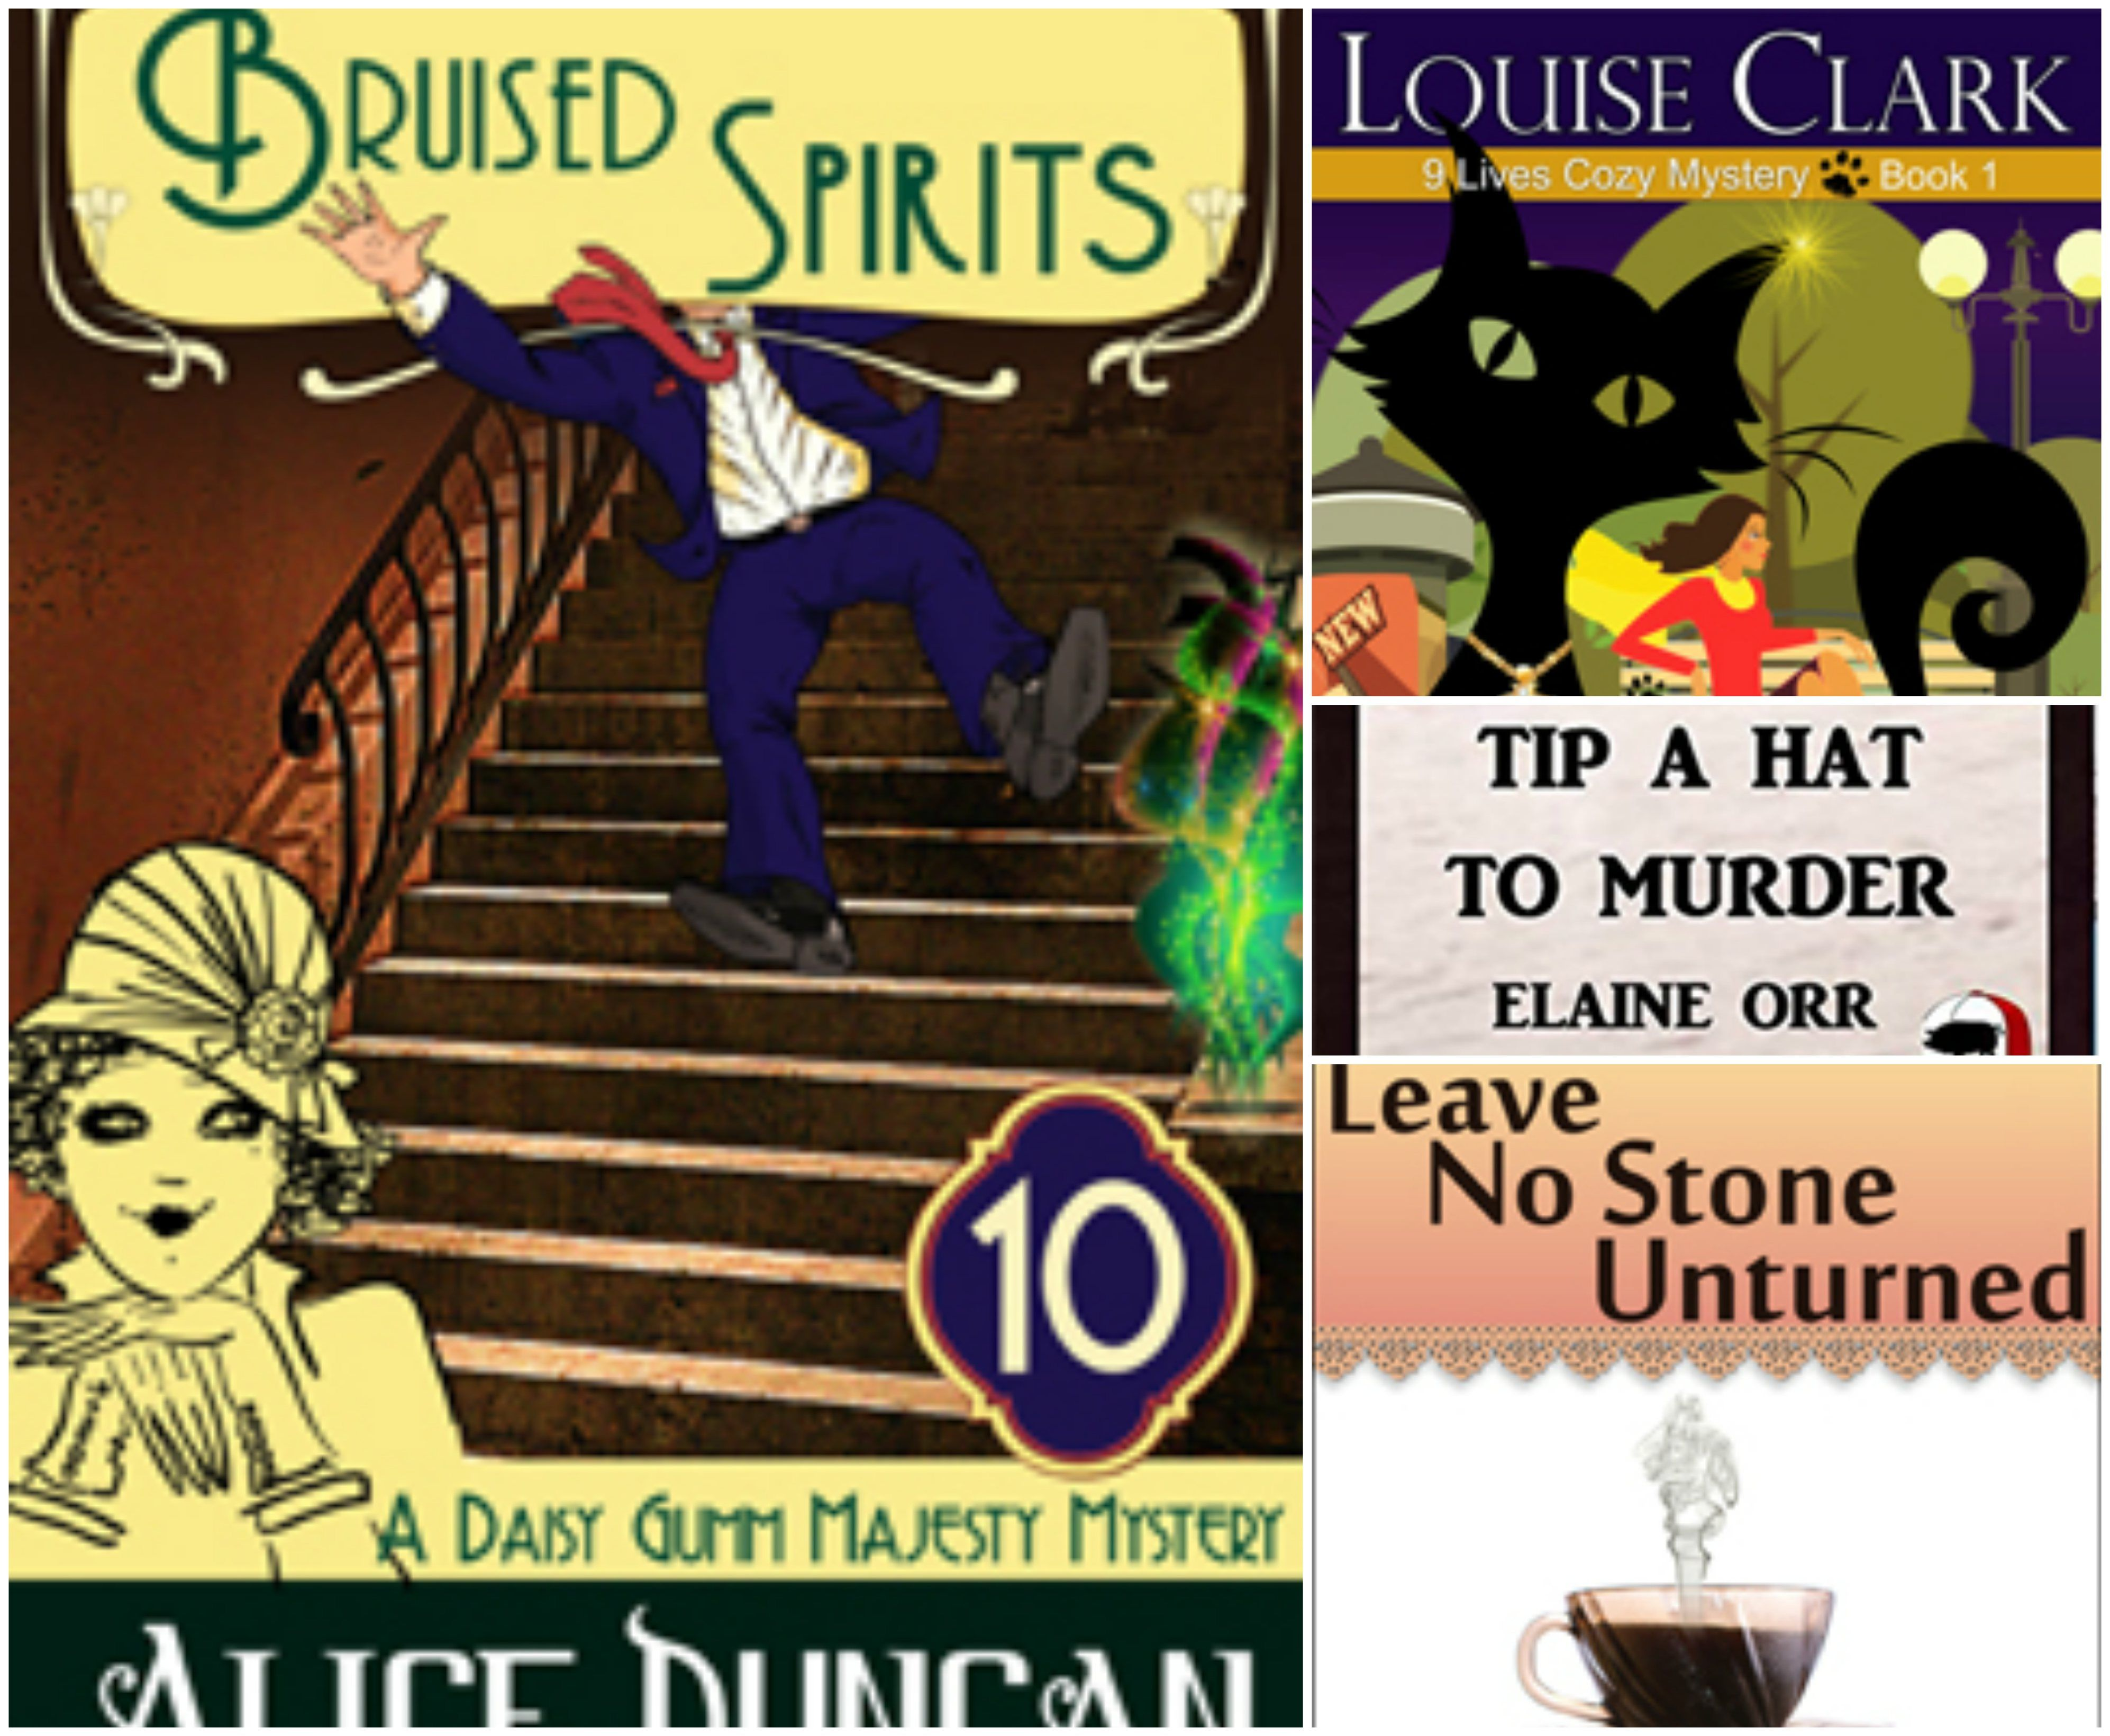 Get 4 fulllength Cozy Mystery eBooks for FREE